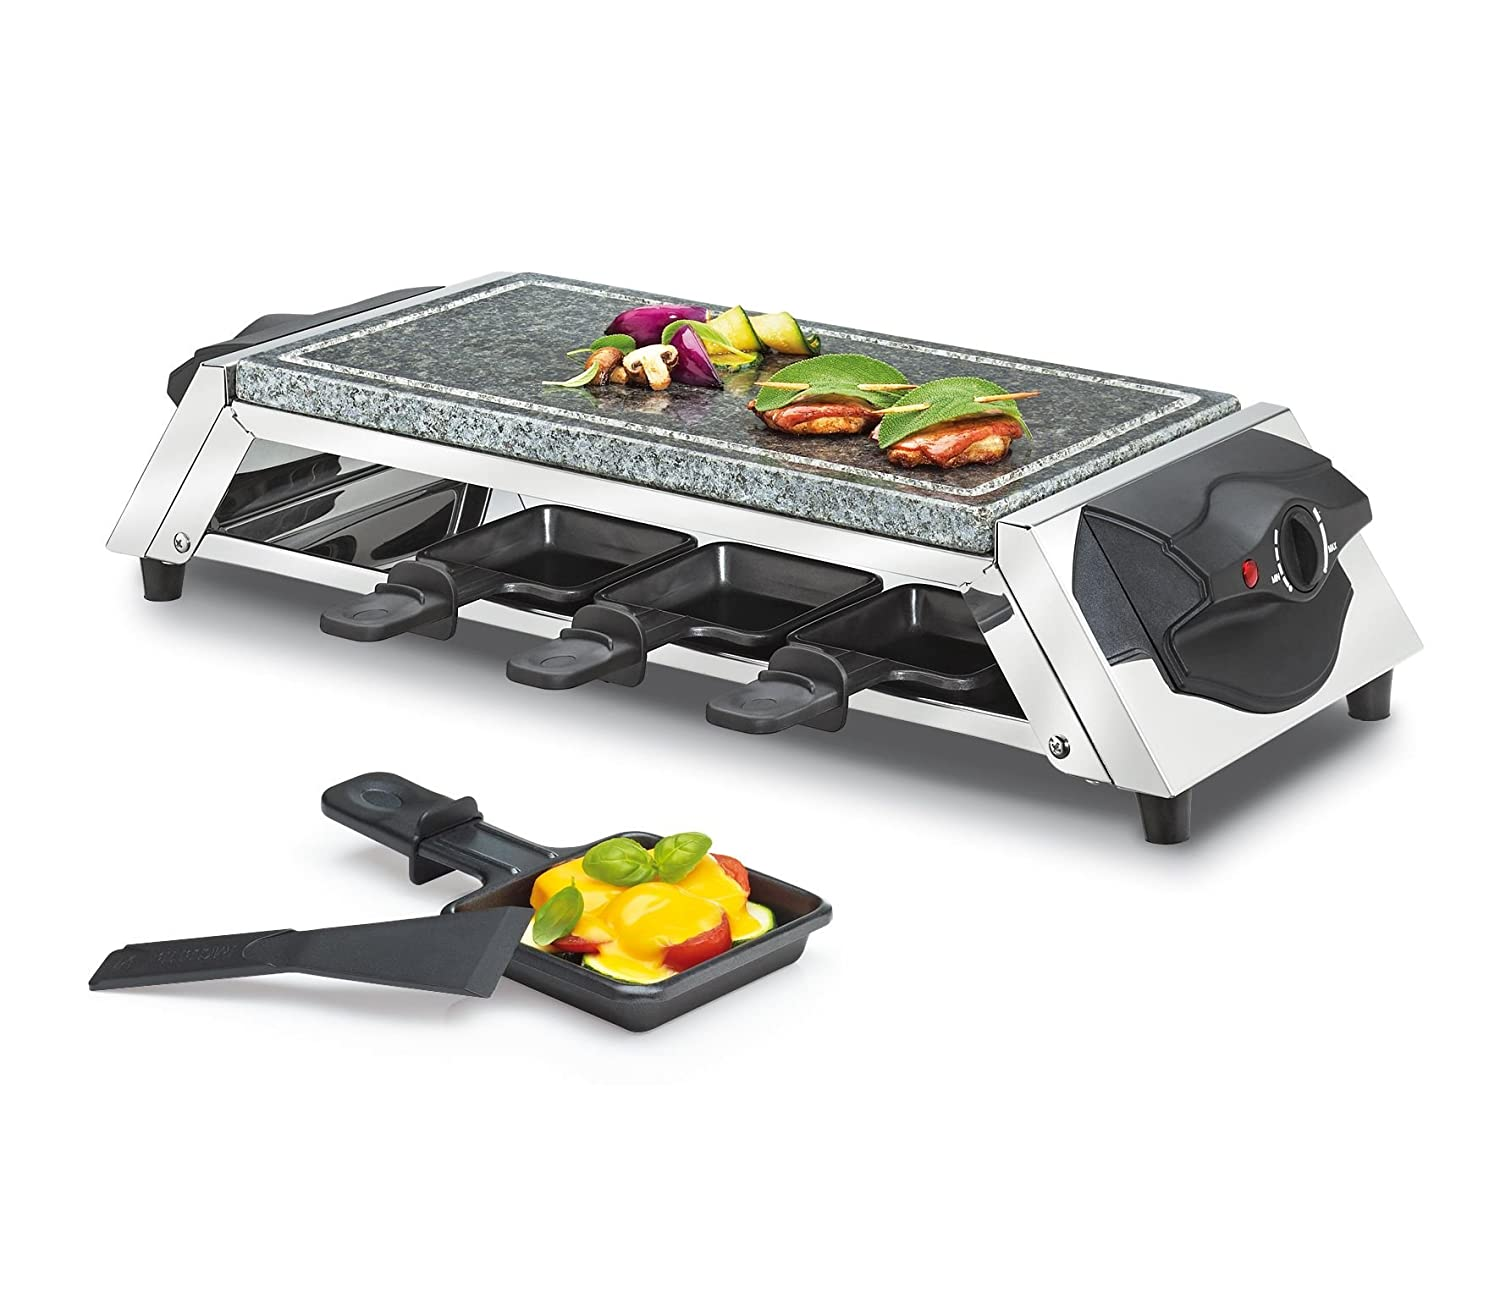 Küchenprofi KP17820000 Raclette Style Hot Stone with 8 Trays Gilberts